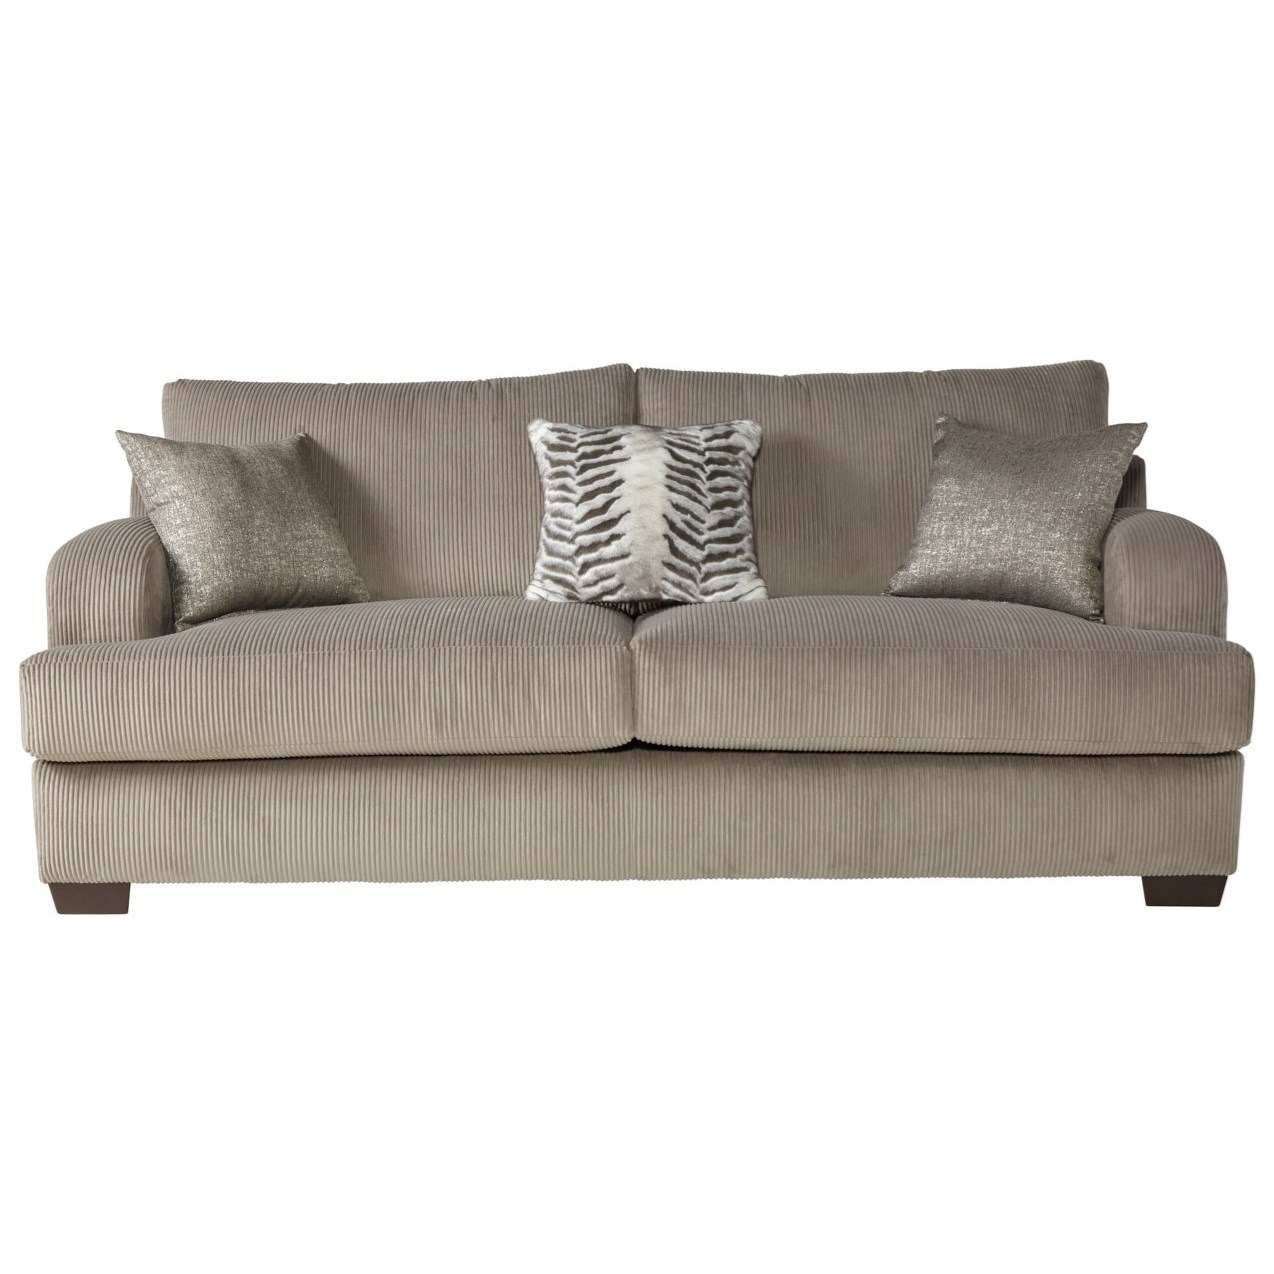 14100 Sofa by Serta Upholstery by Hughes Furniture at Rooms for Less